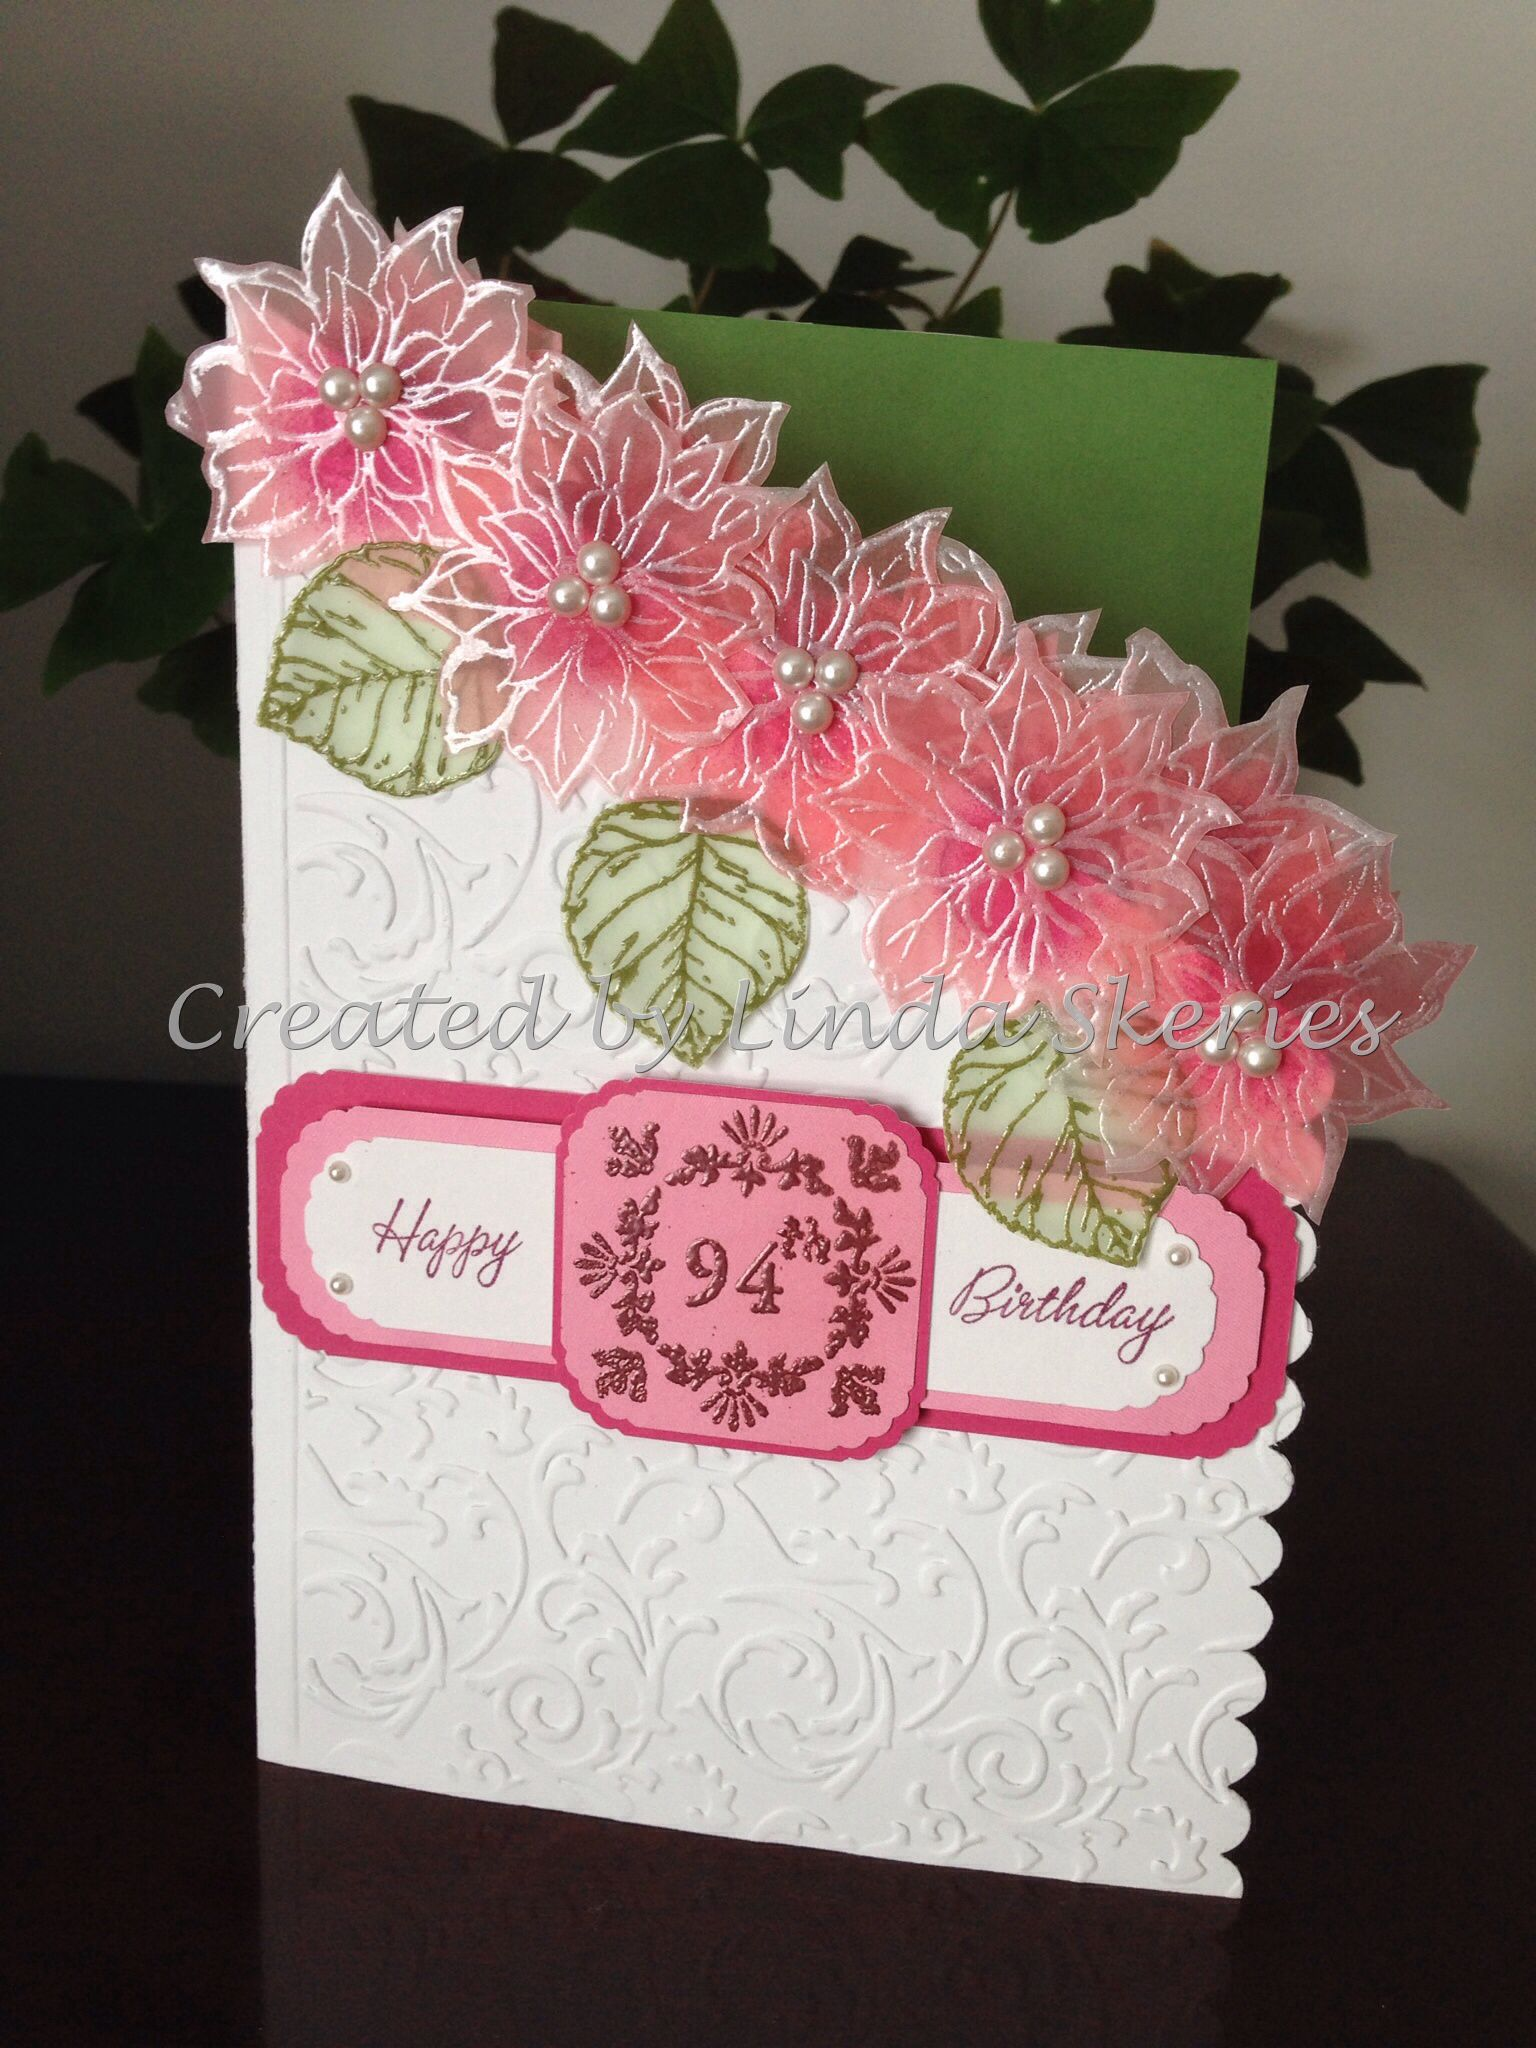 A Special Birthday Card With Embossed Flowers On Vellum Crafts